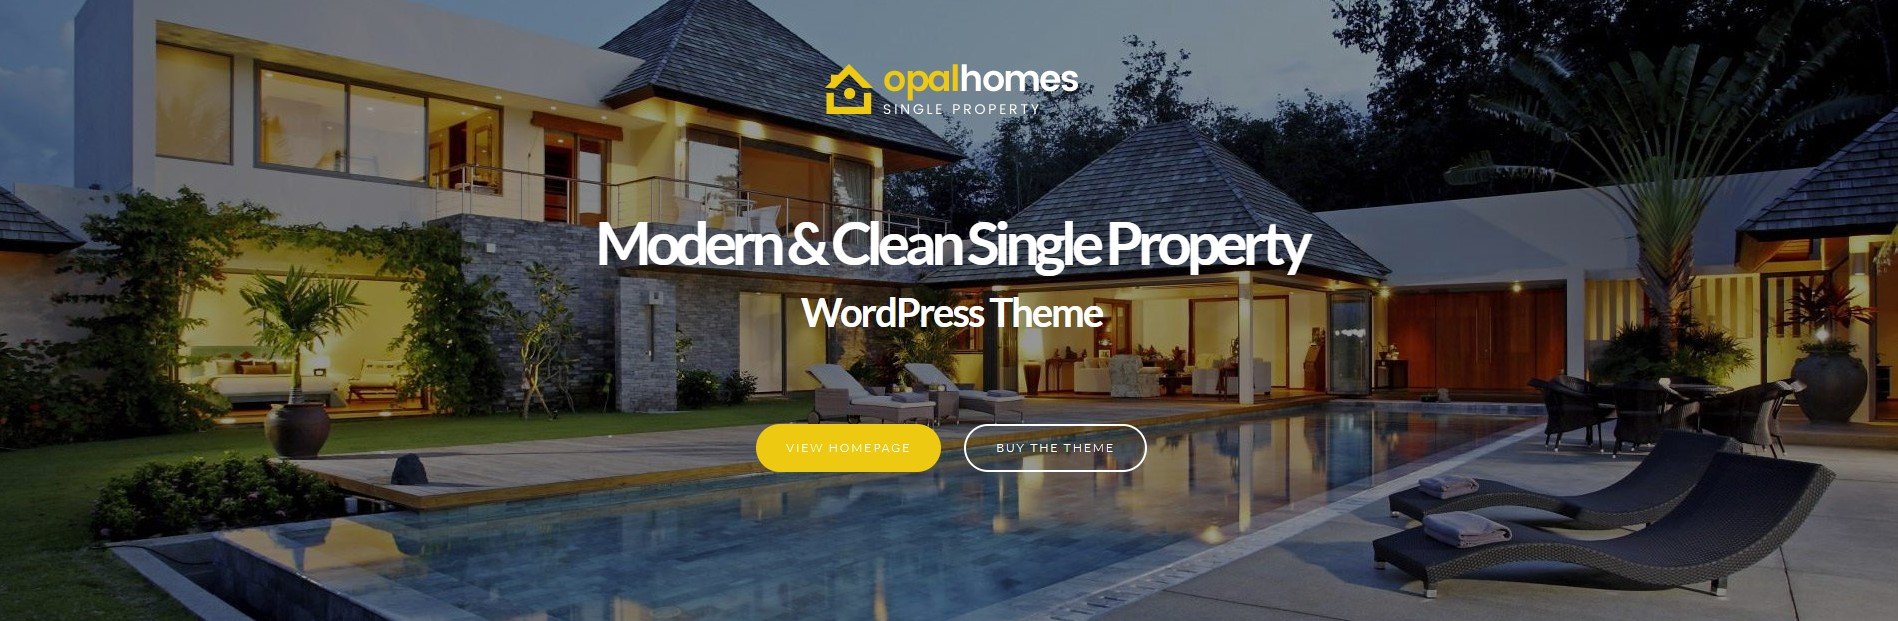 Opalhomes – Single Property WordPress Theme